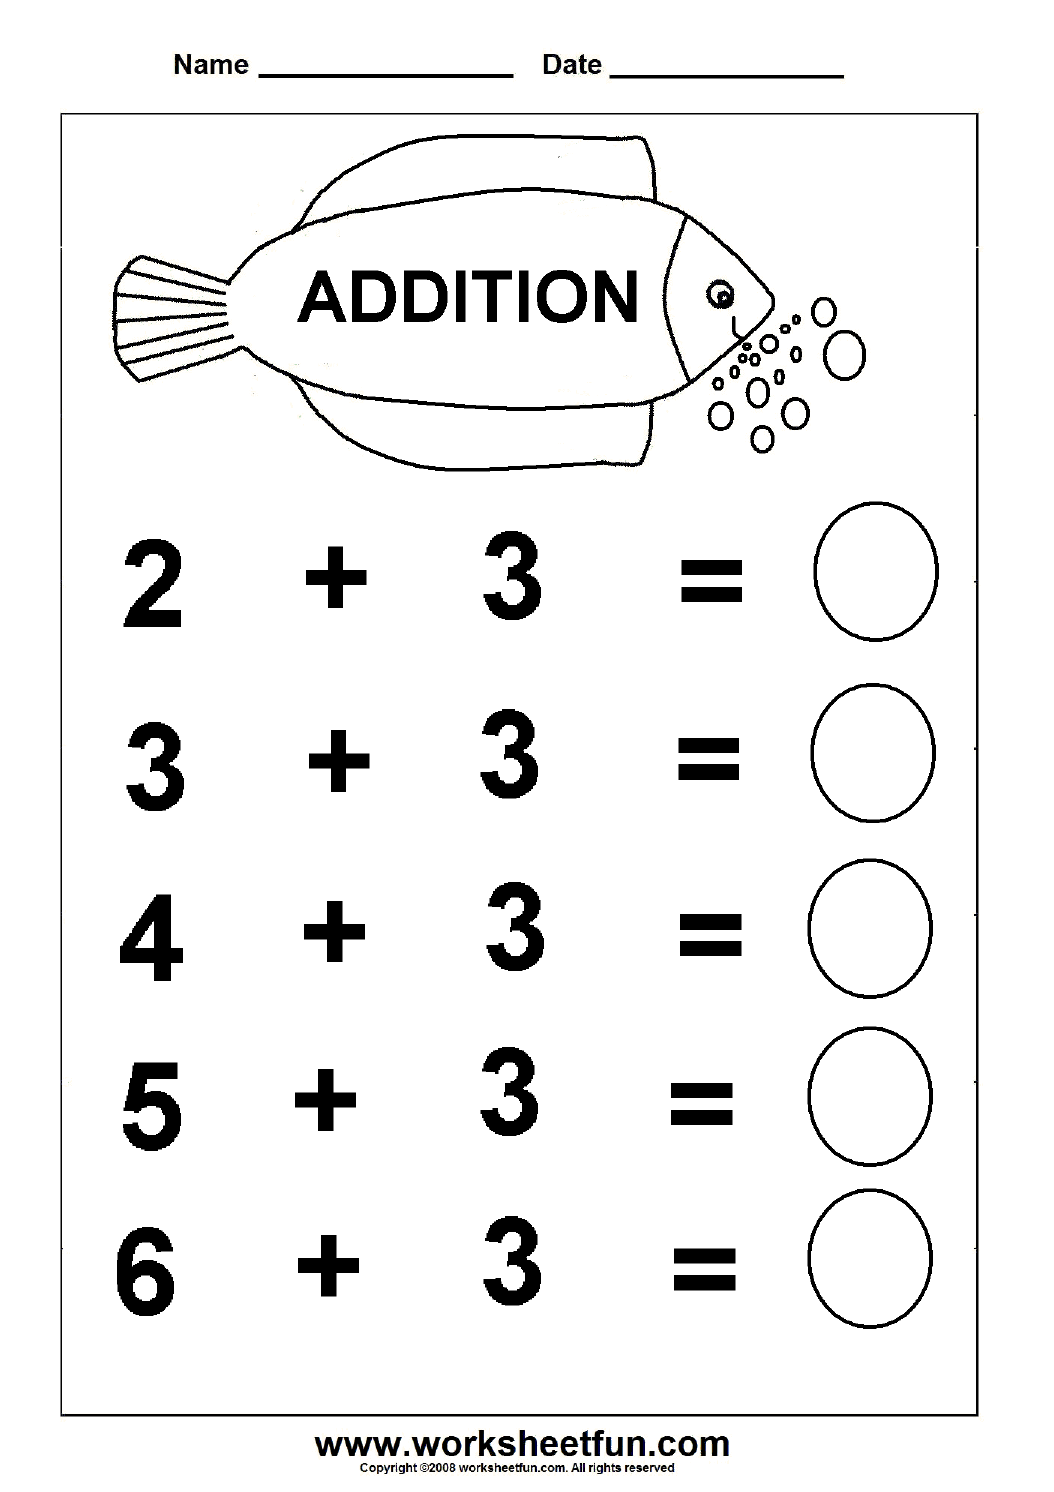 Addition Basic Addition Facts FREE Printable Worksheets – Addition Worksheets